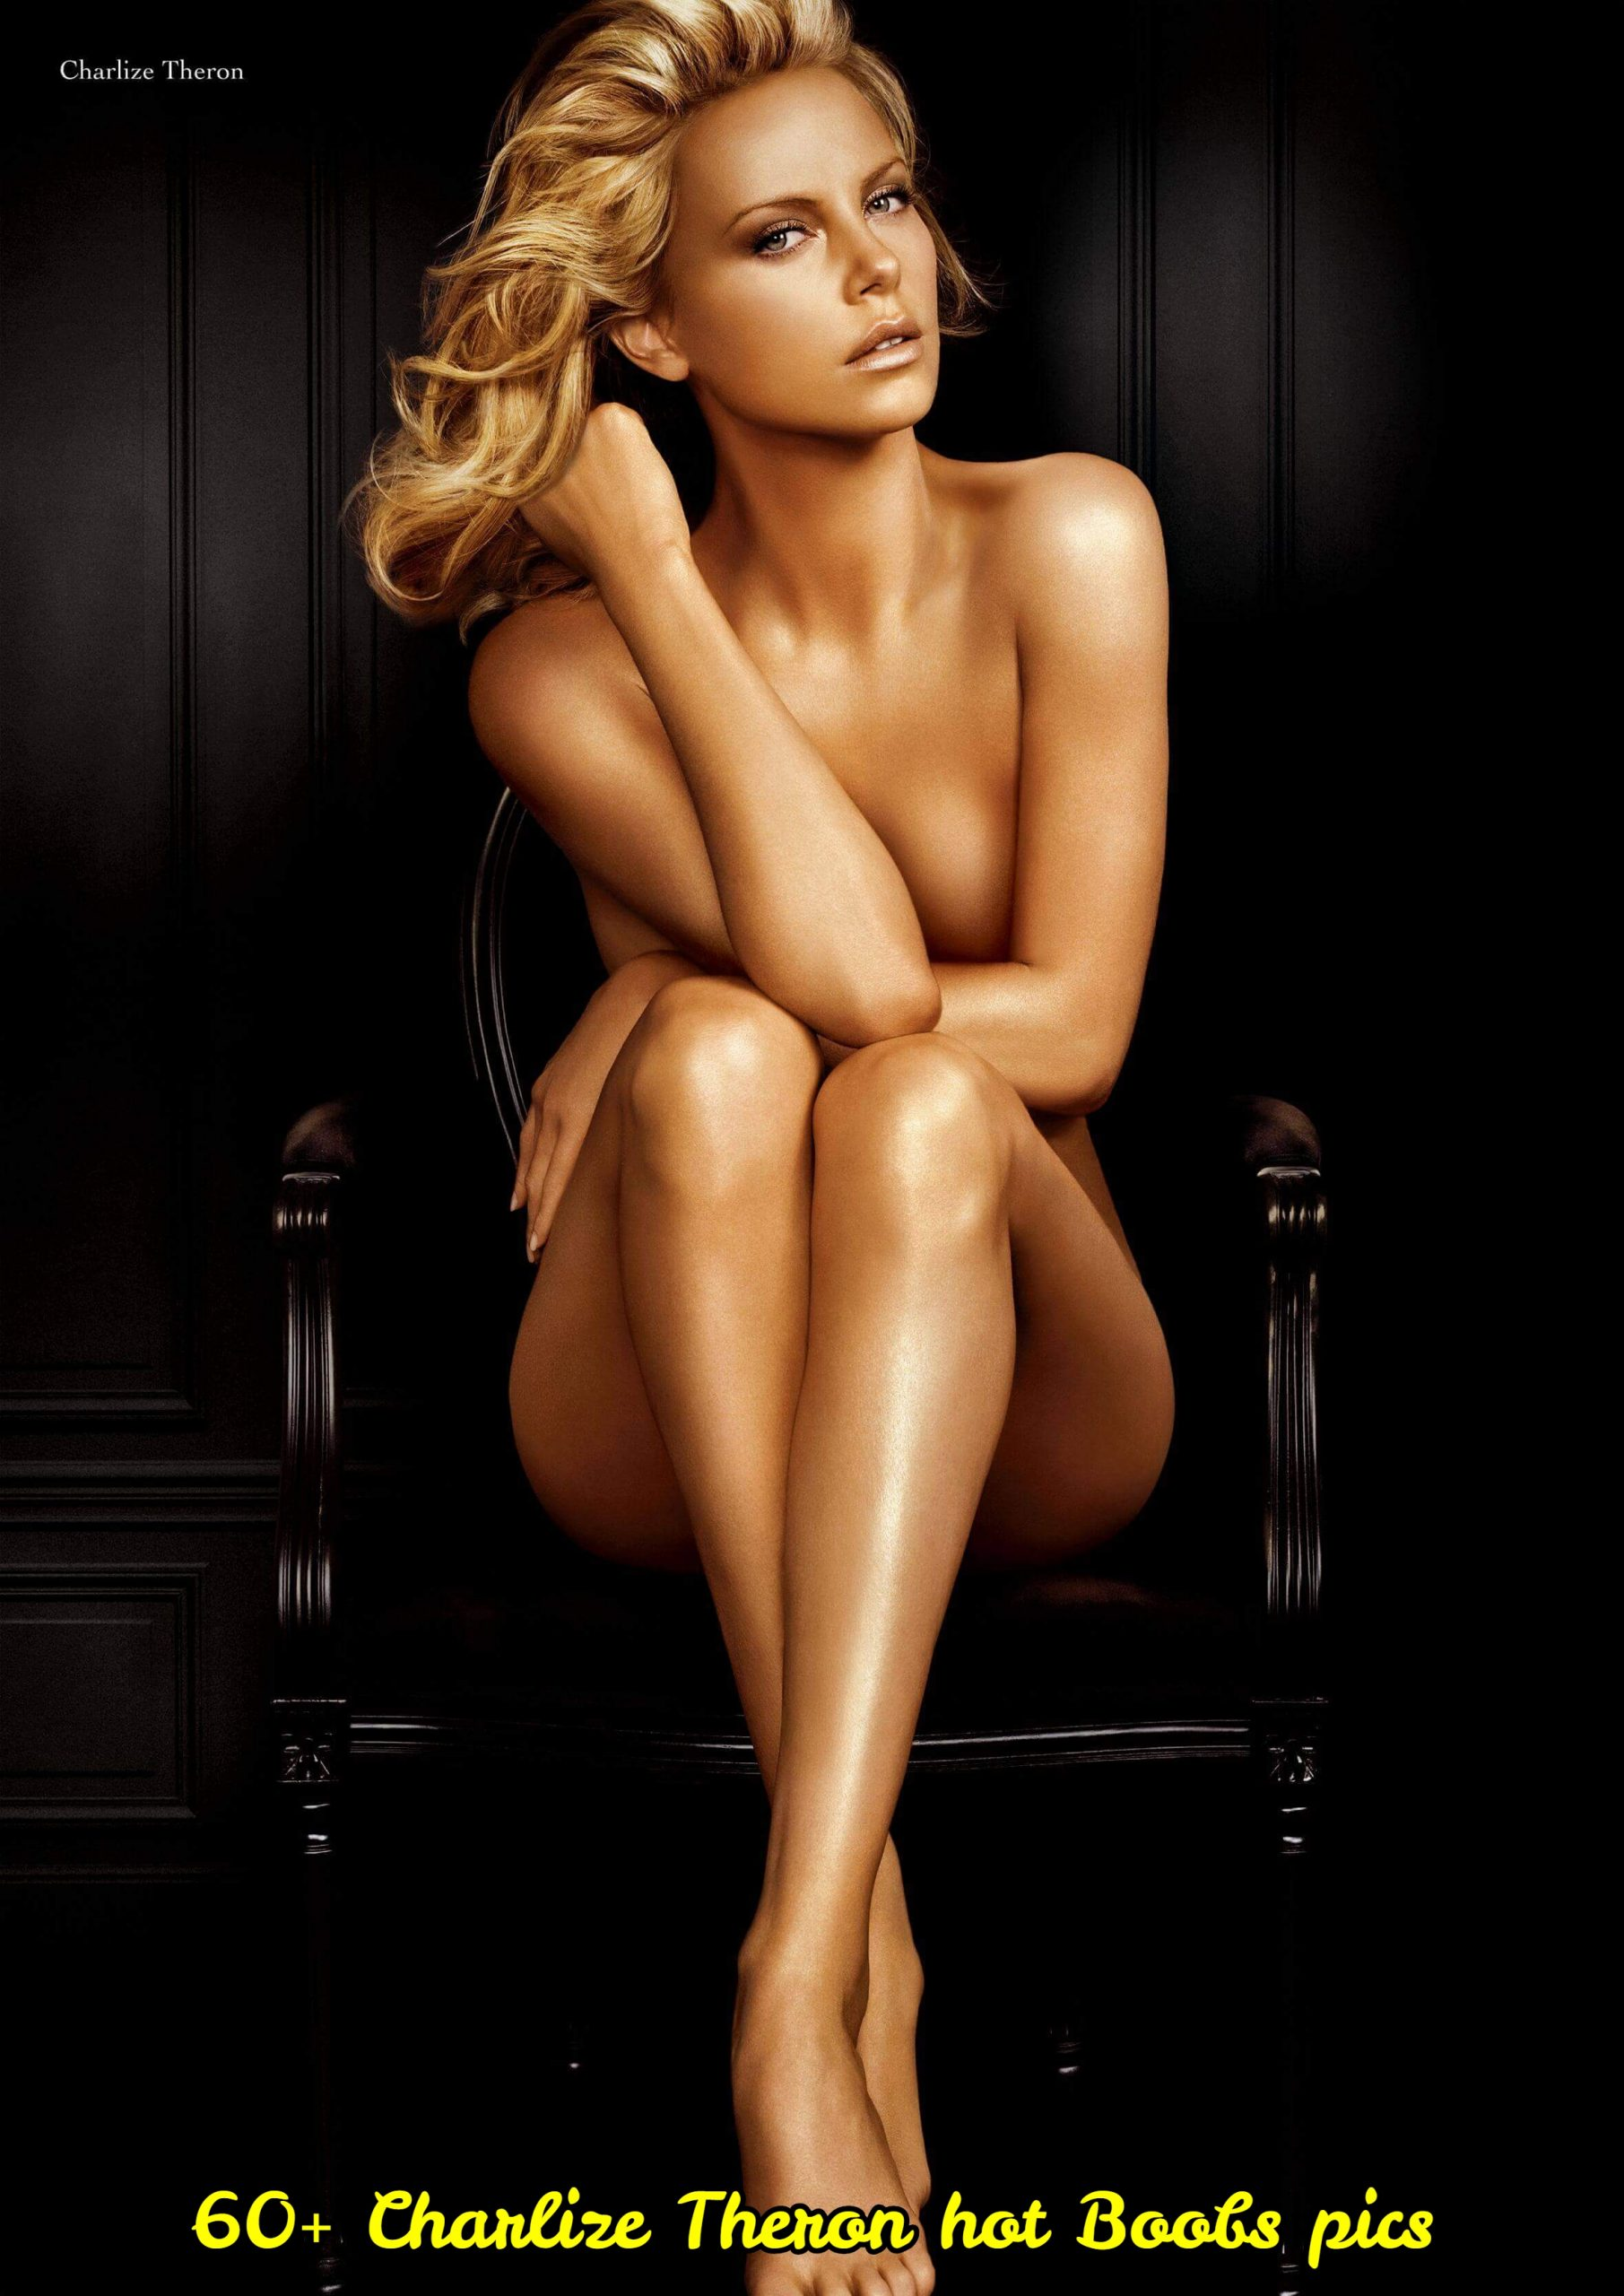 Charlize Theron sexy pictures